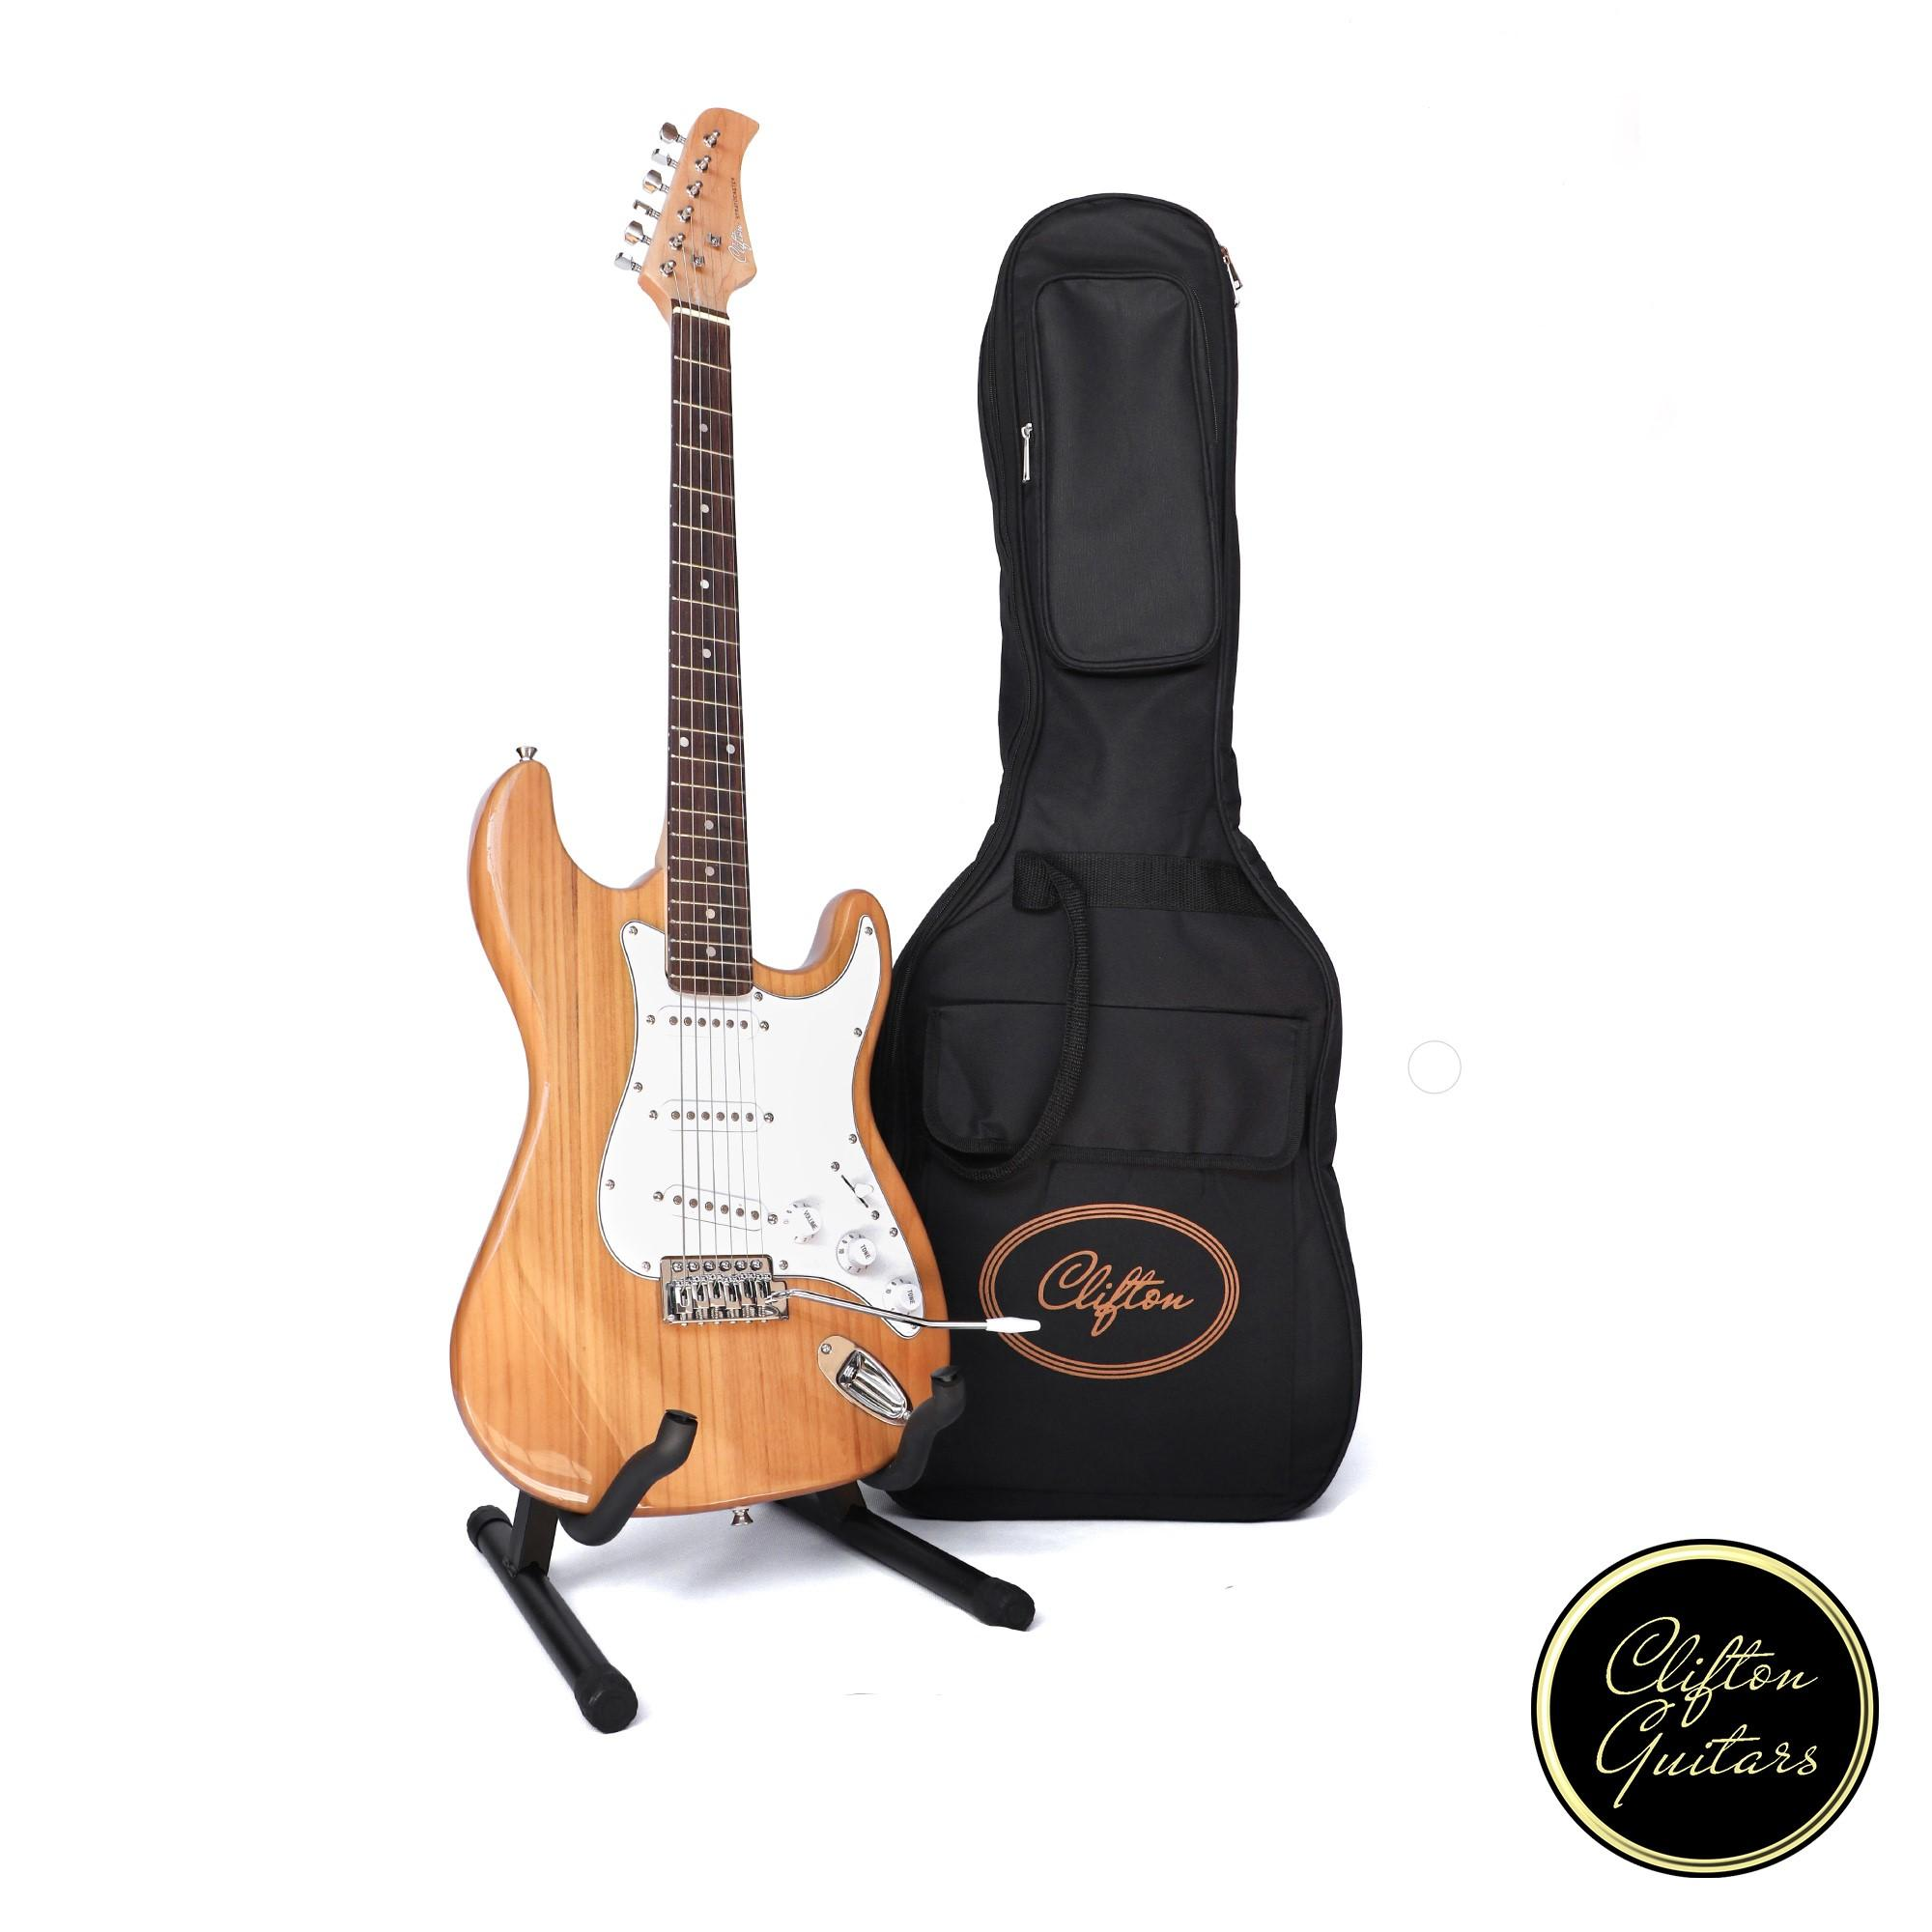 Electric Guitar for sale - Rock Band Guitars best seller